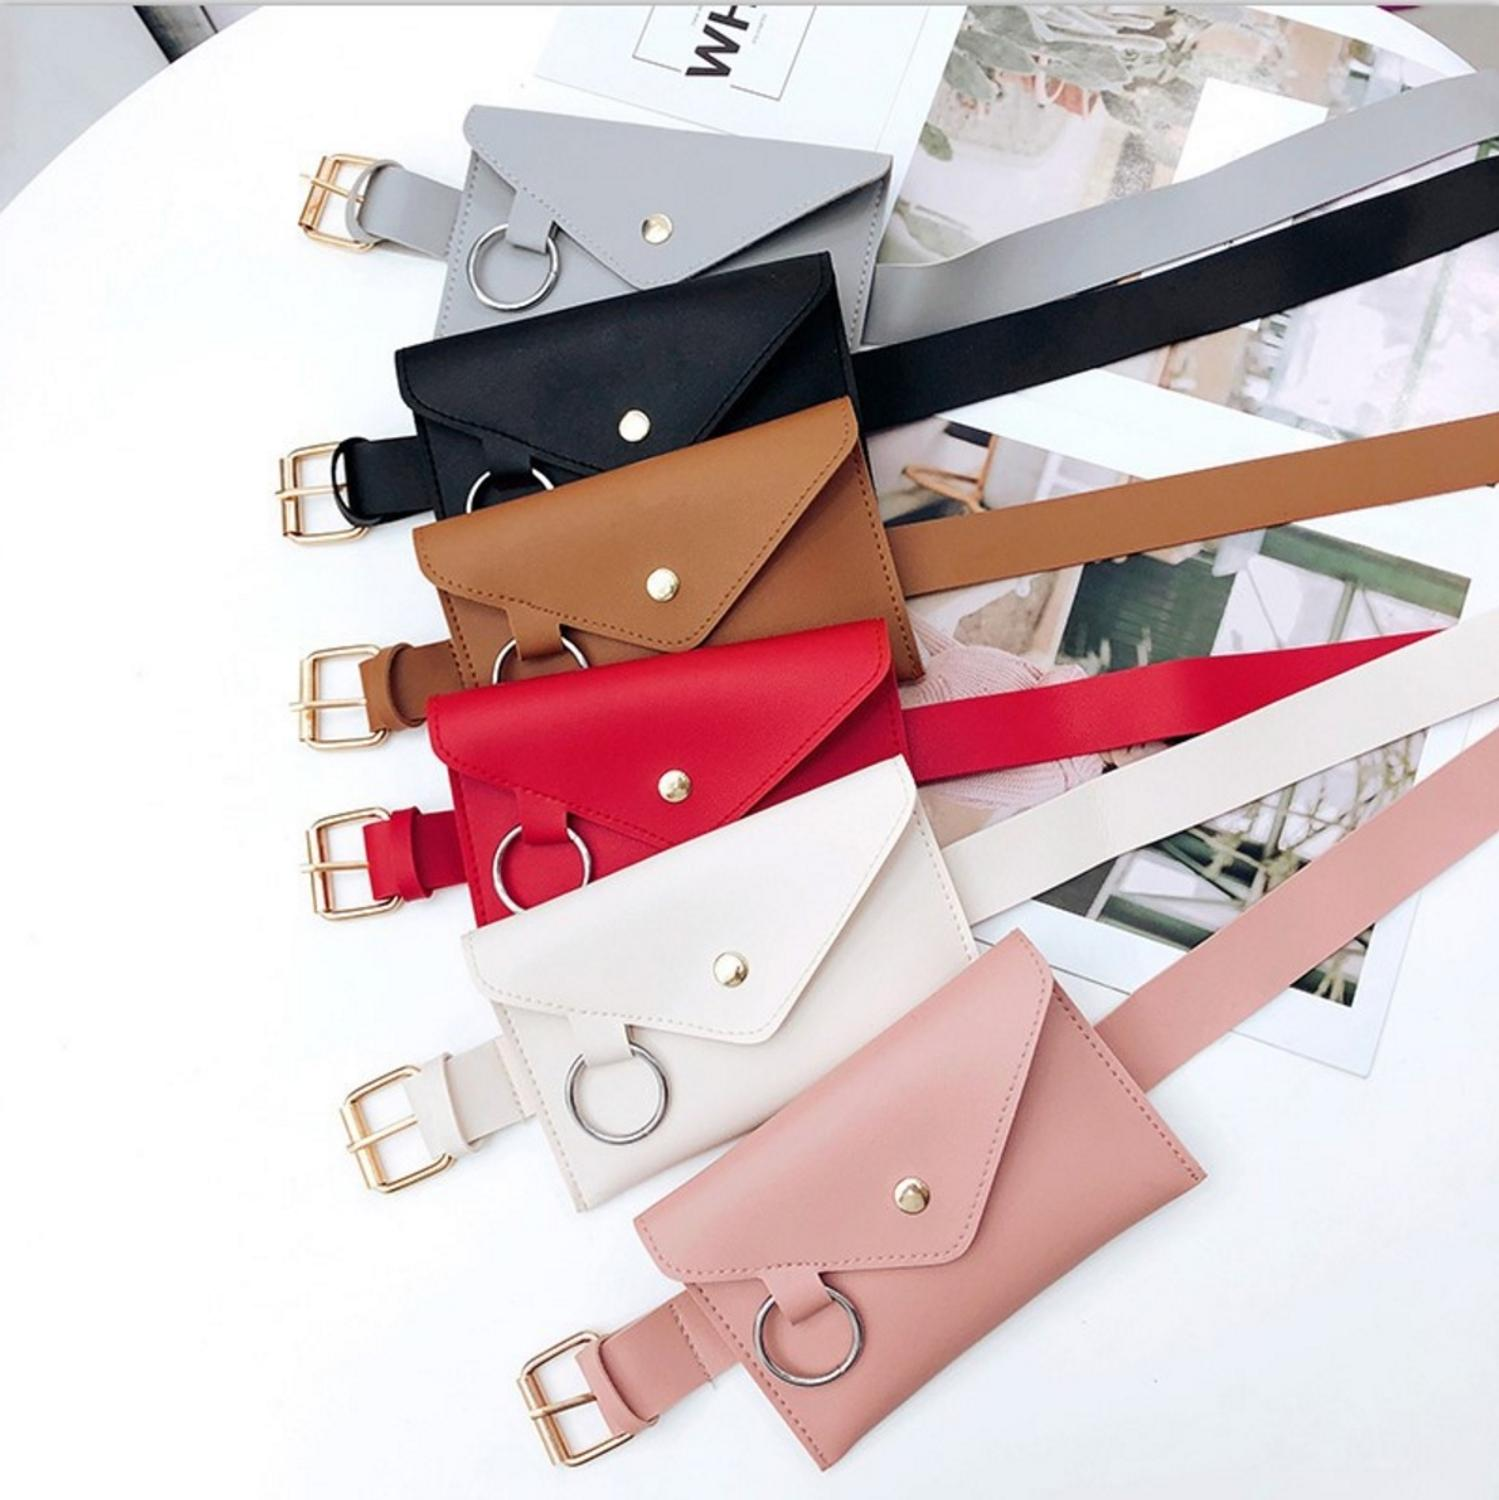 Fashion Women PU Leather Wasit Bag Vintage Crossbody Handbag Tote Classical Solid Handbag Pocket Bag Shoulder Bag